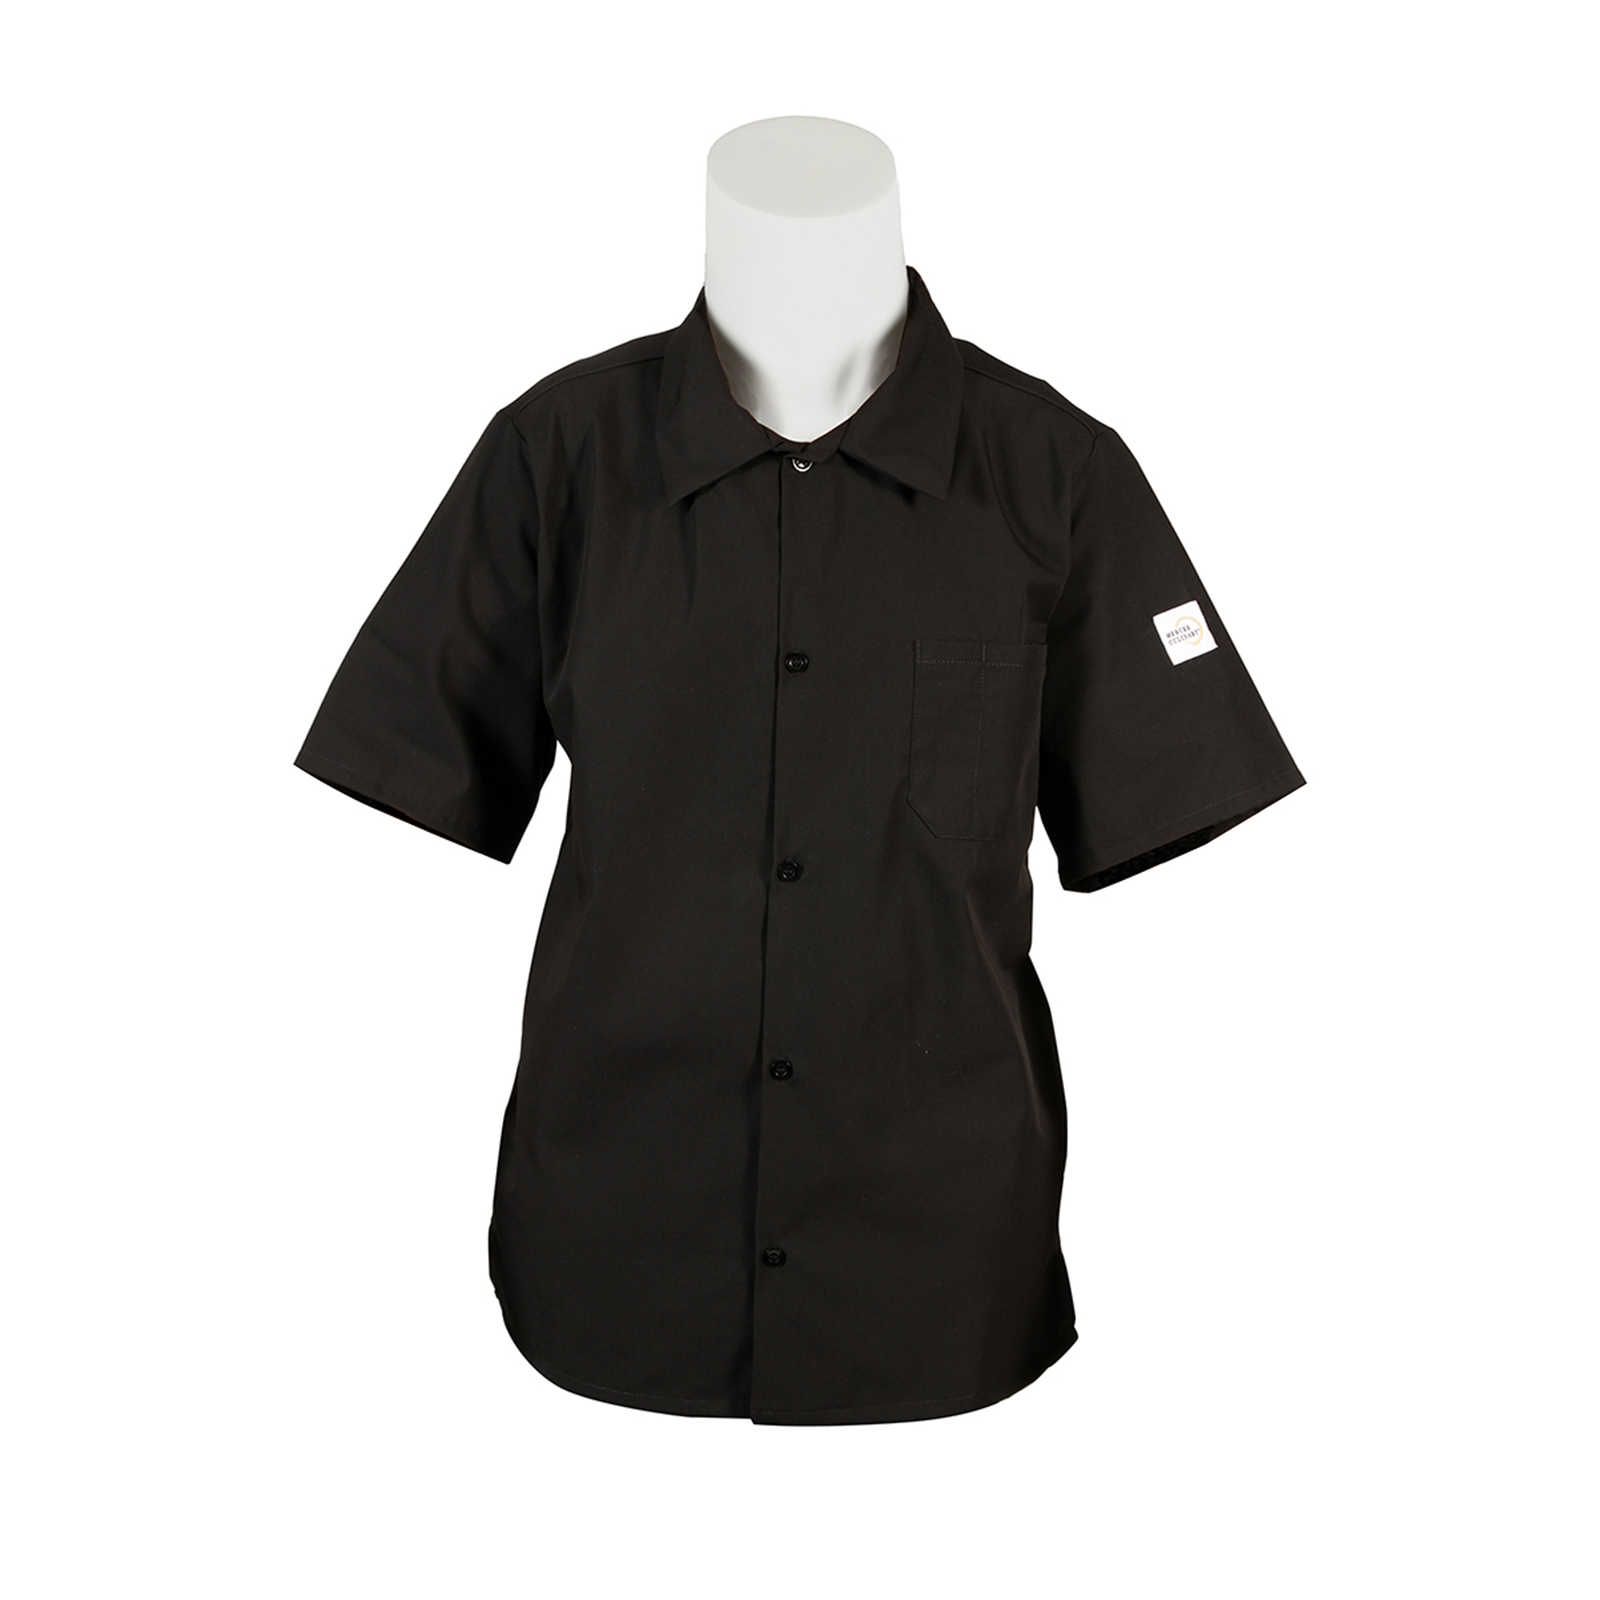 Mercer Culinary M60200BK5X cook's shirt